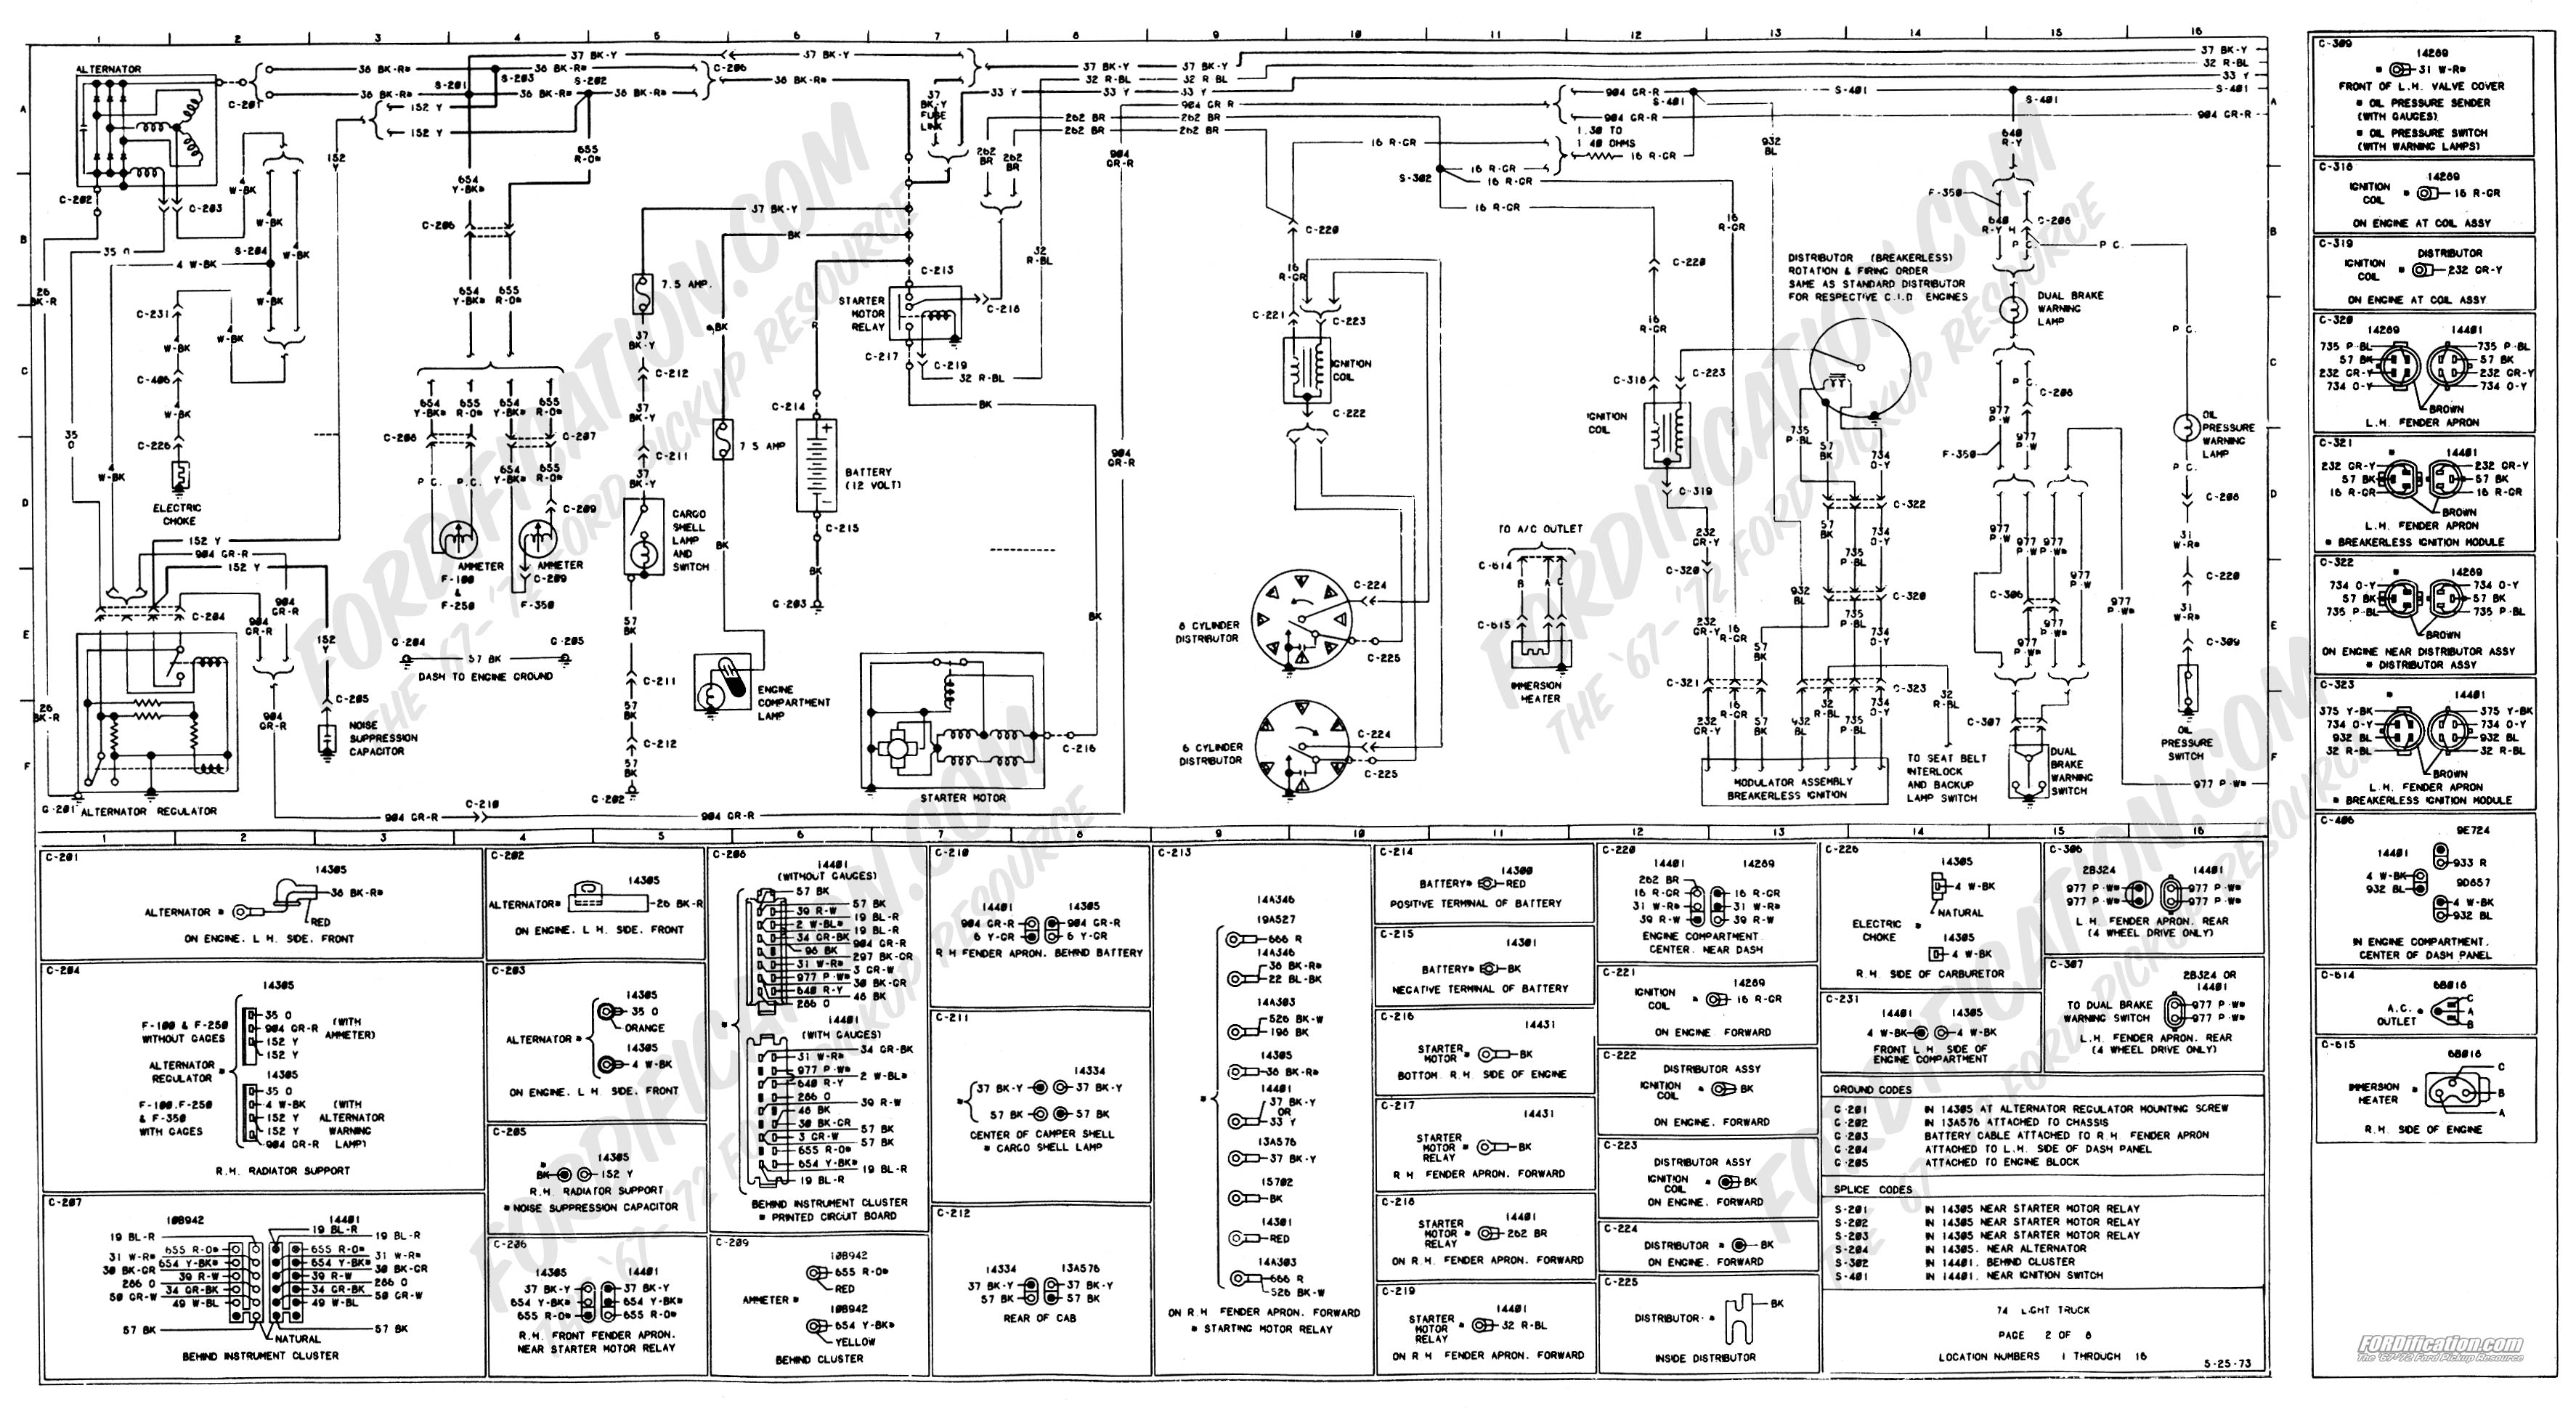 1998 E250 Wiring Diagram Libraries Ford E 150 Stereo 1979 Box Diagramwiring For 1980 Van